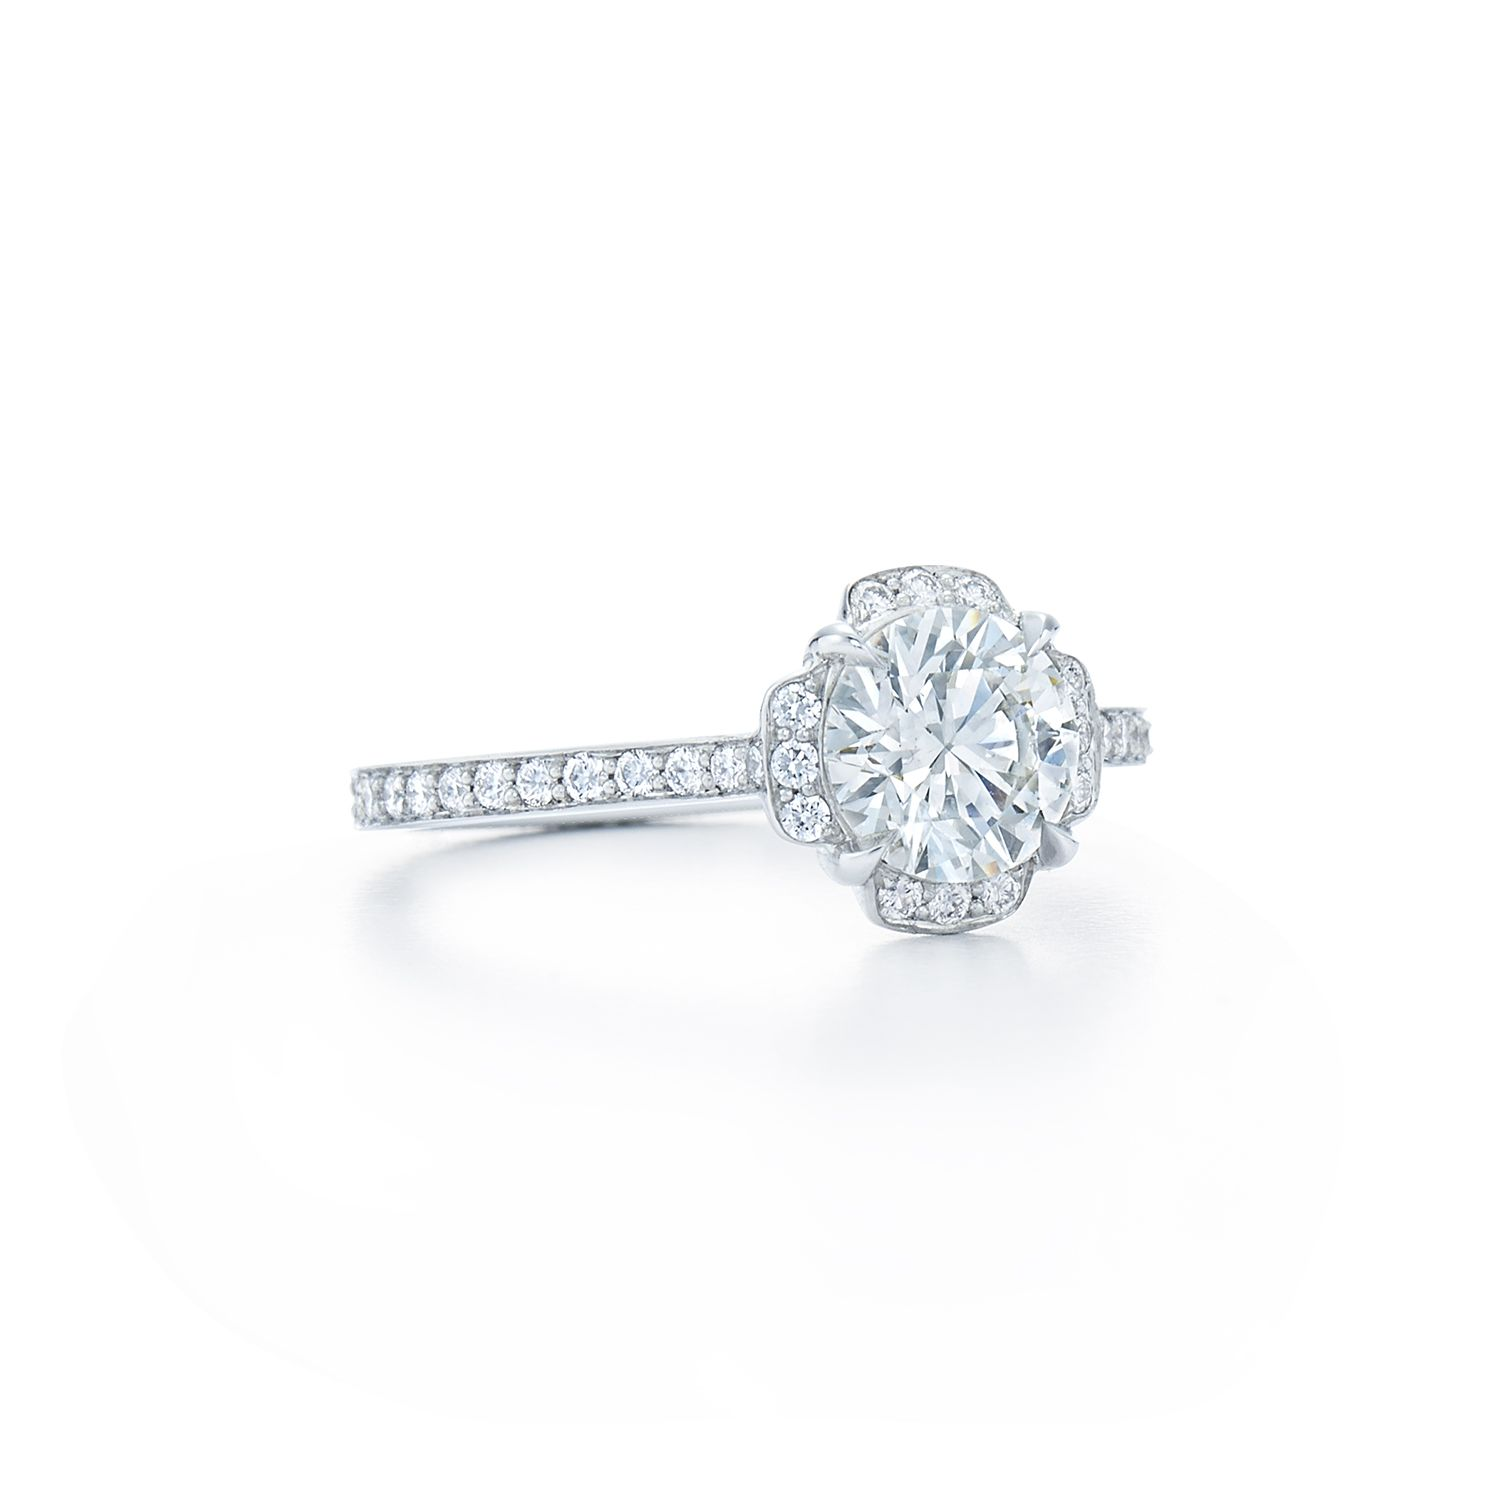 Round brilliant diamond ring with pave diamond halo and band set in